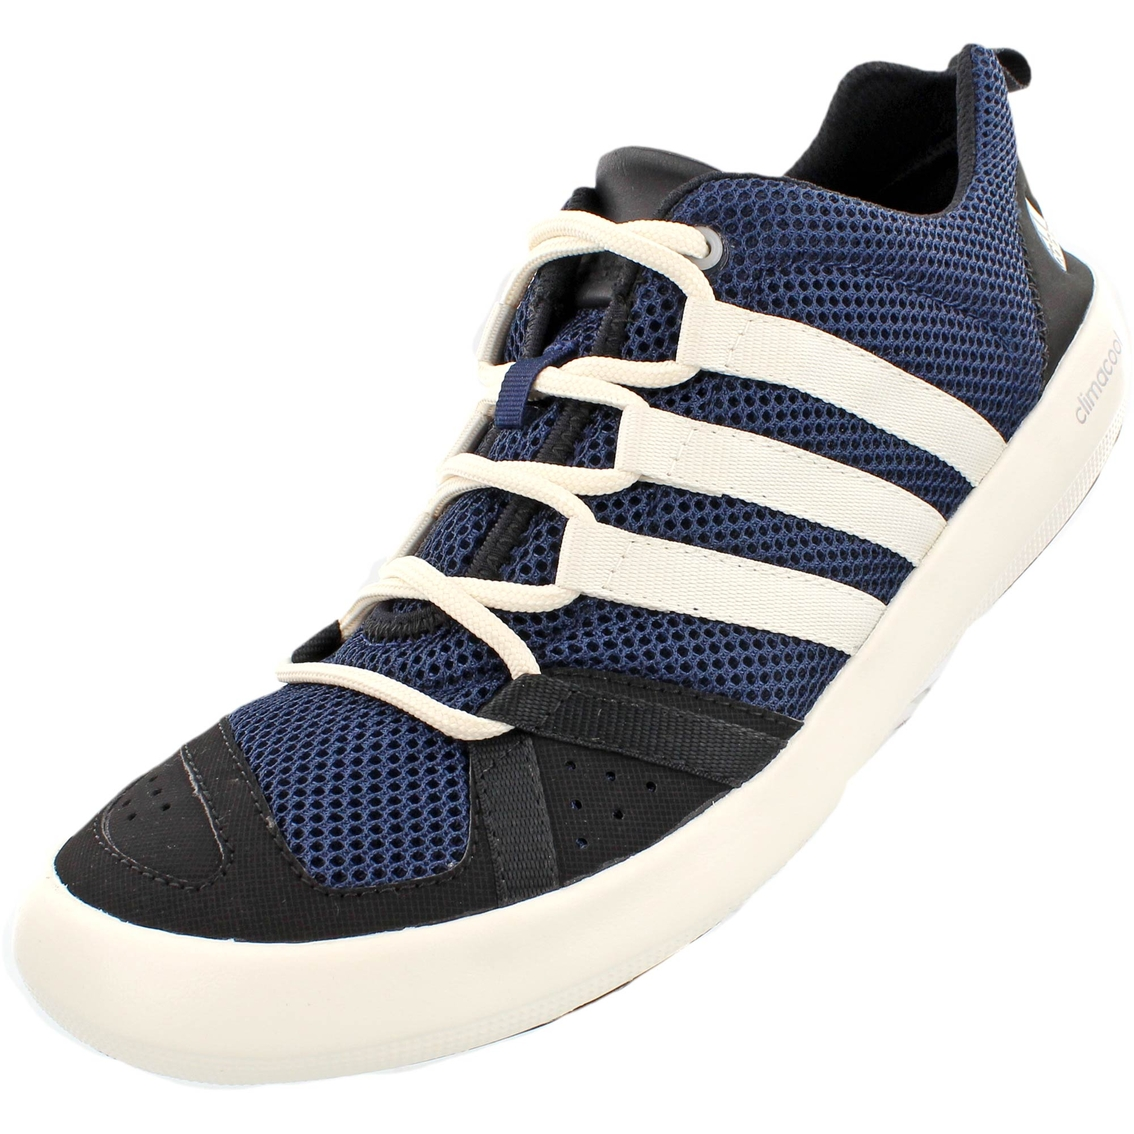 quality design c532b a660d Adidas Outdoor Mens Climacool Boat Lace Outdoor Shoes